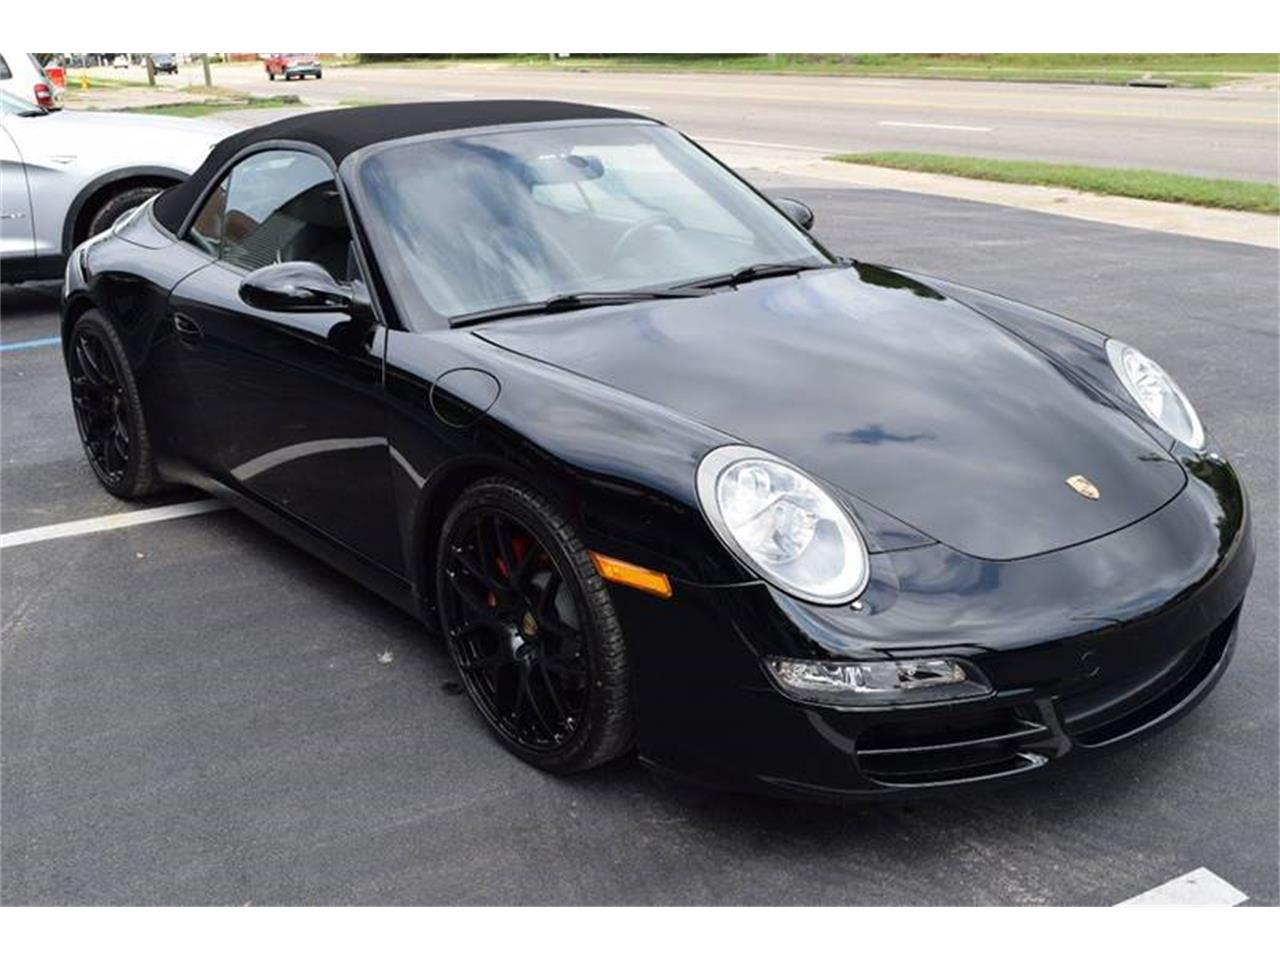 2006 Porsche 911 for sale in Biloxi, MS – photo 7